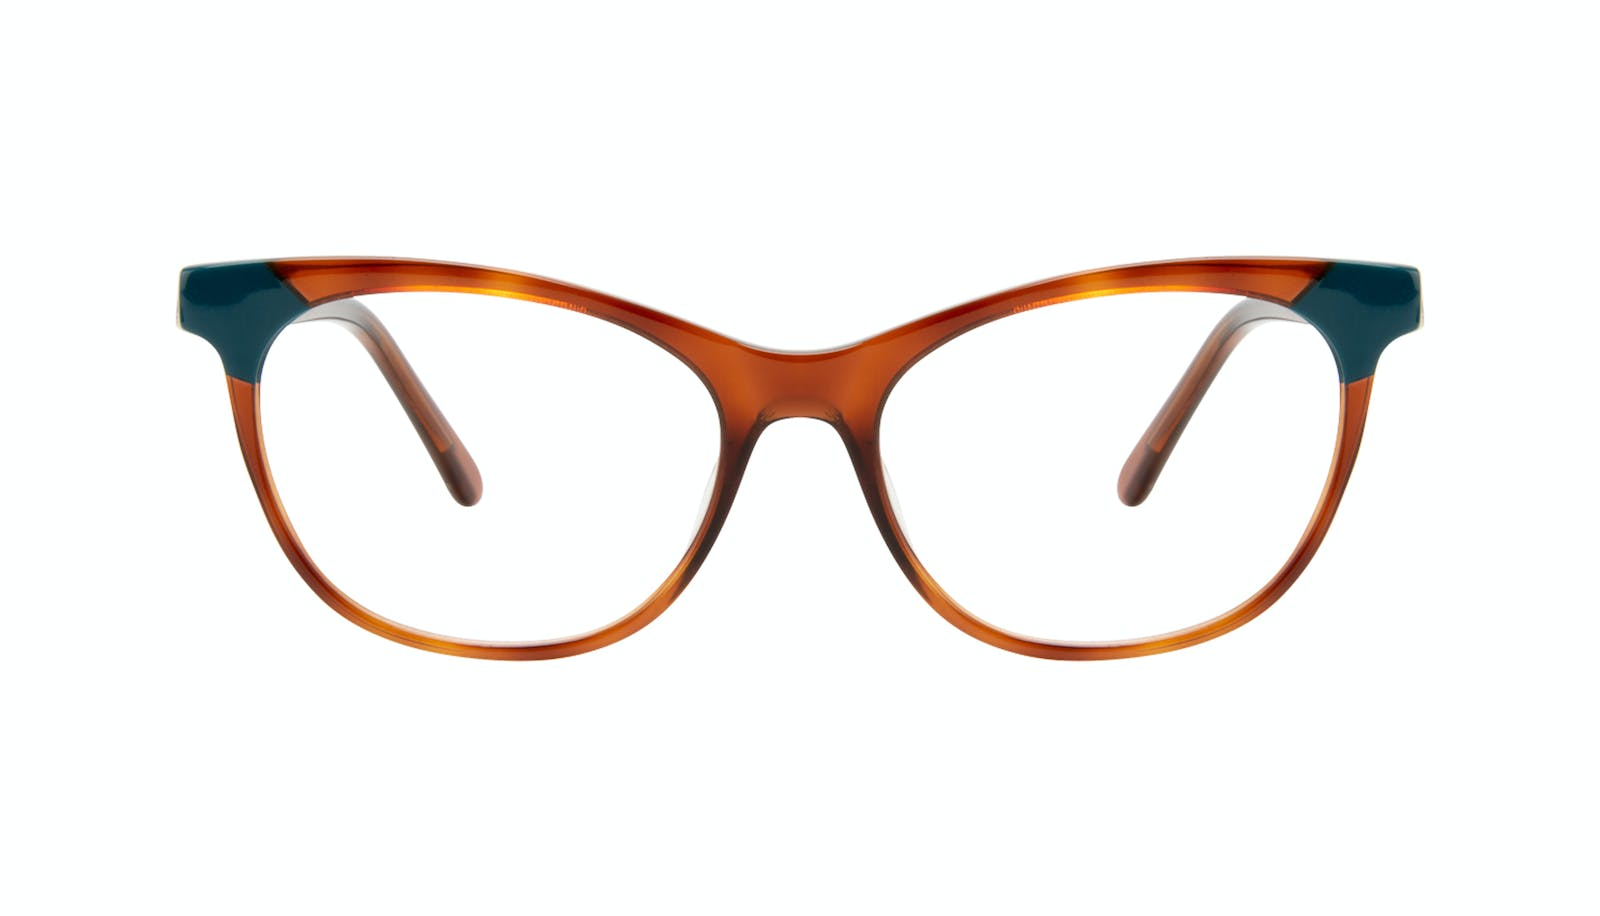 92a8a6ffb66 Affordable Fashion Glasses Cat Eye Eyeglasses Women Witty Teal Tort